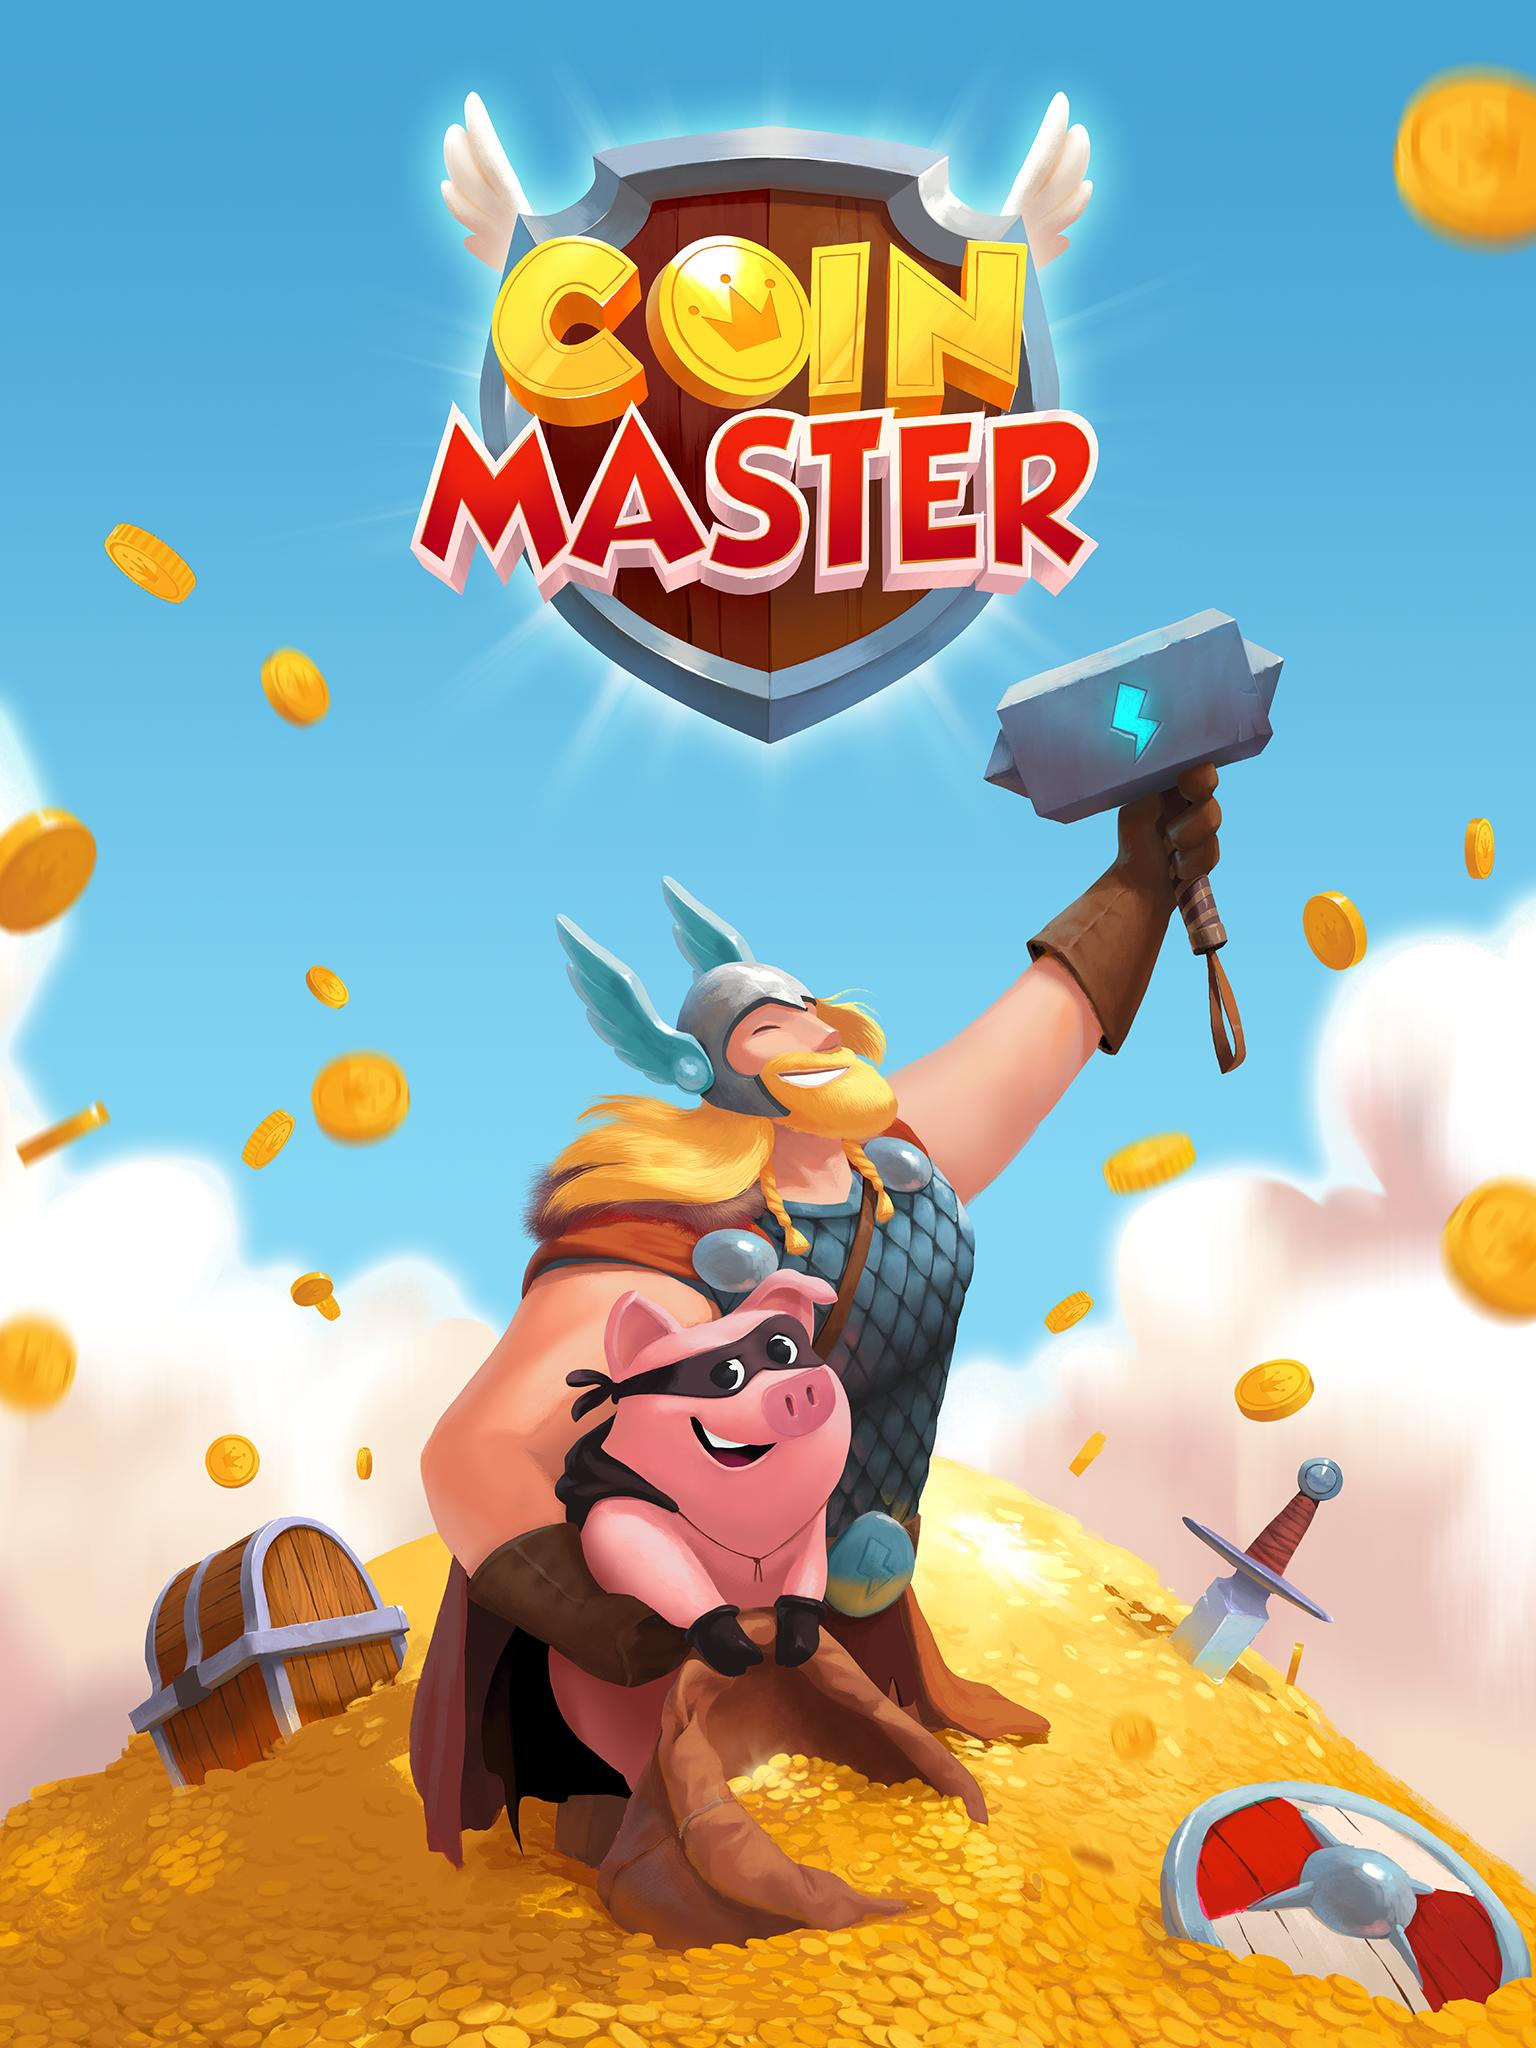 Coin Master for Android - APK Download